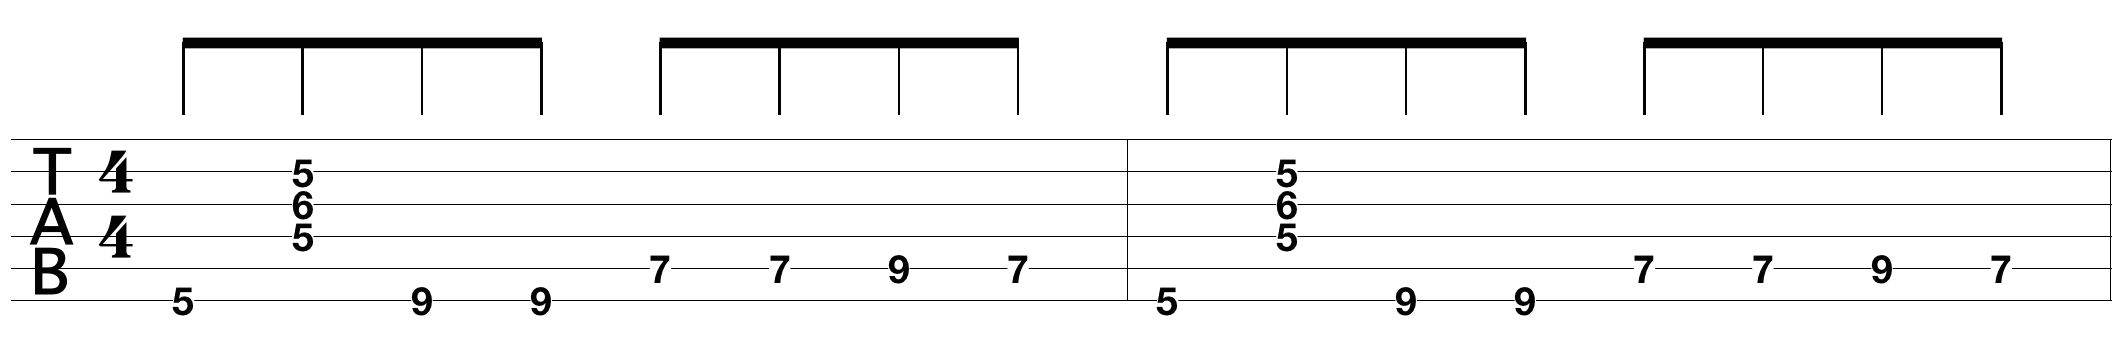 blues-bass-lessons_1.png